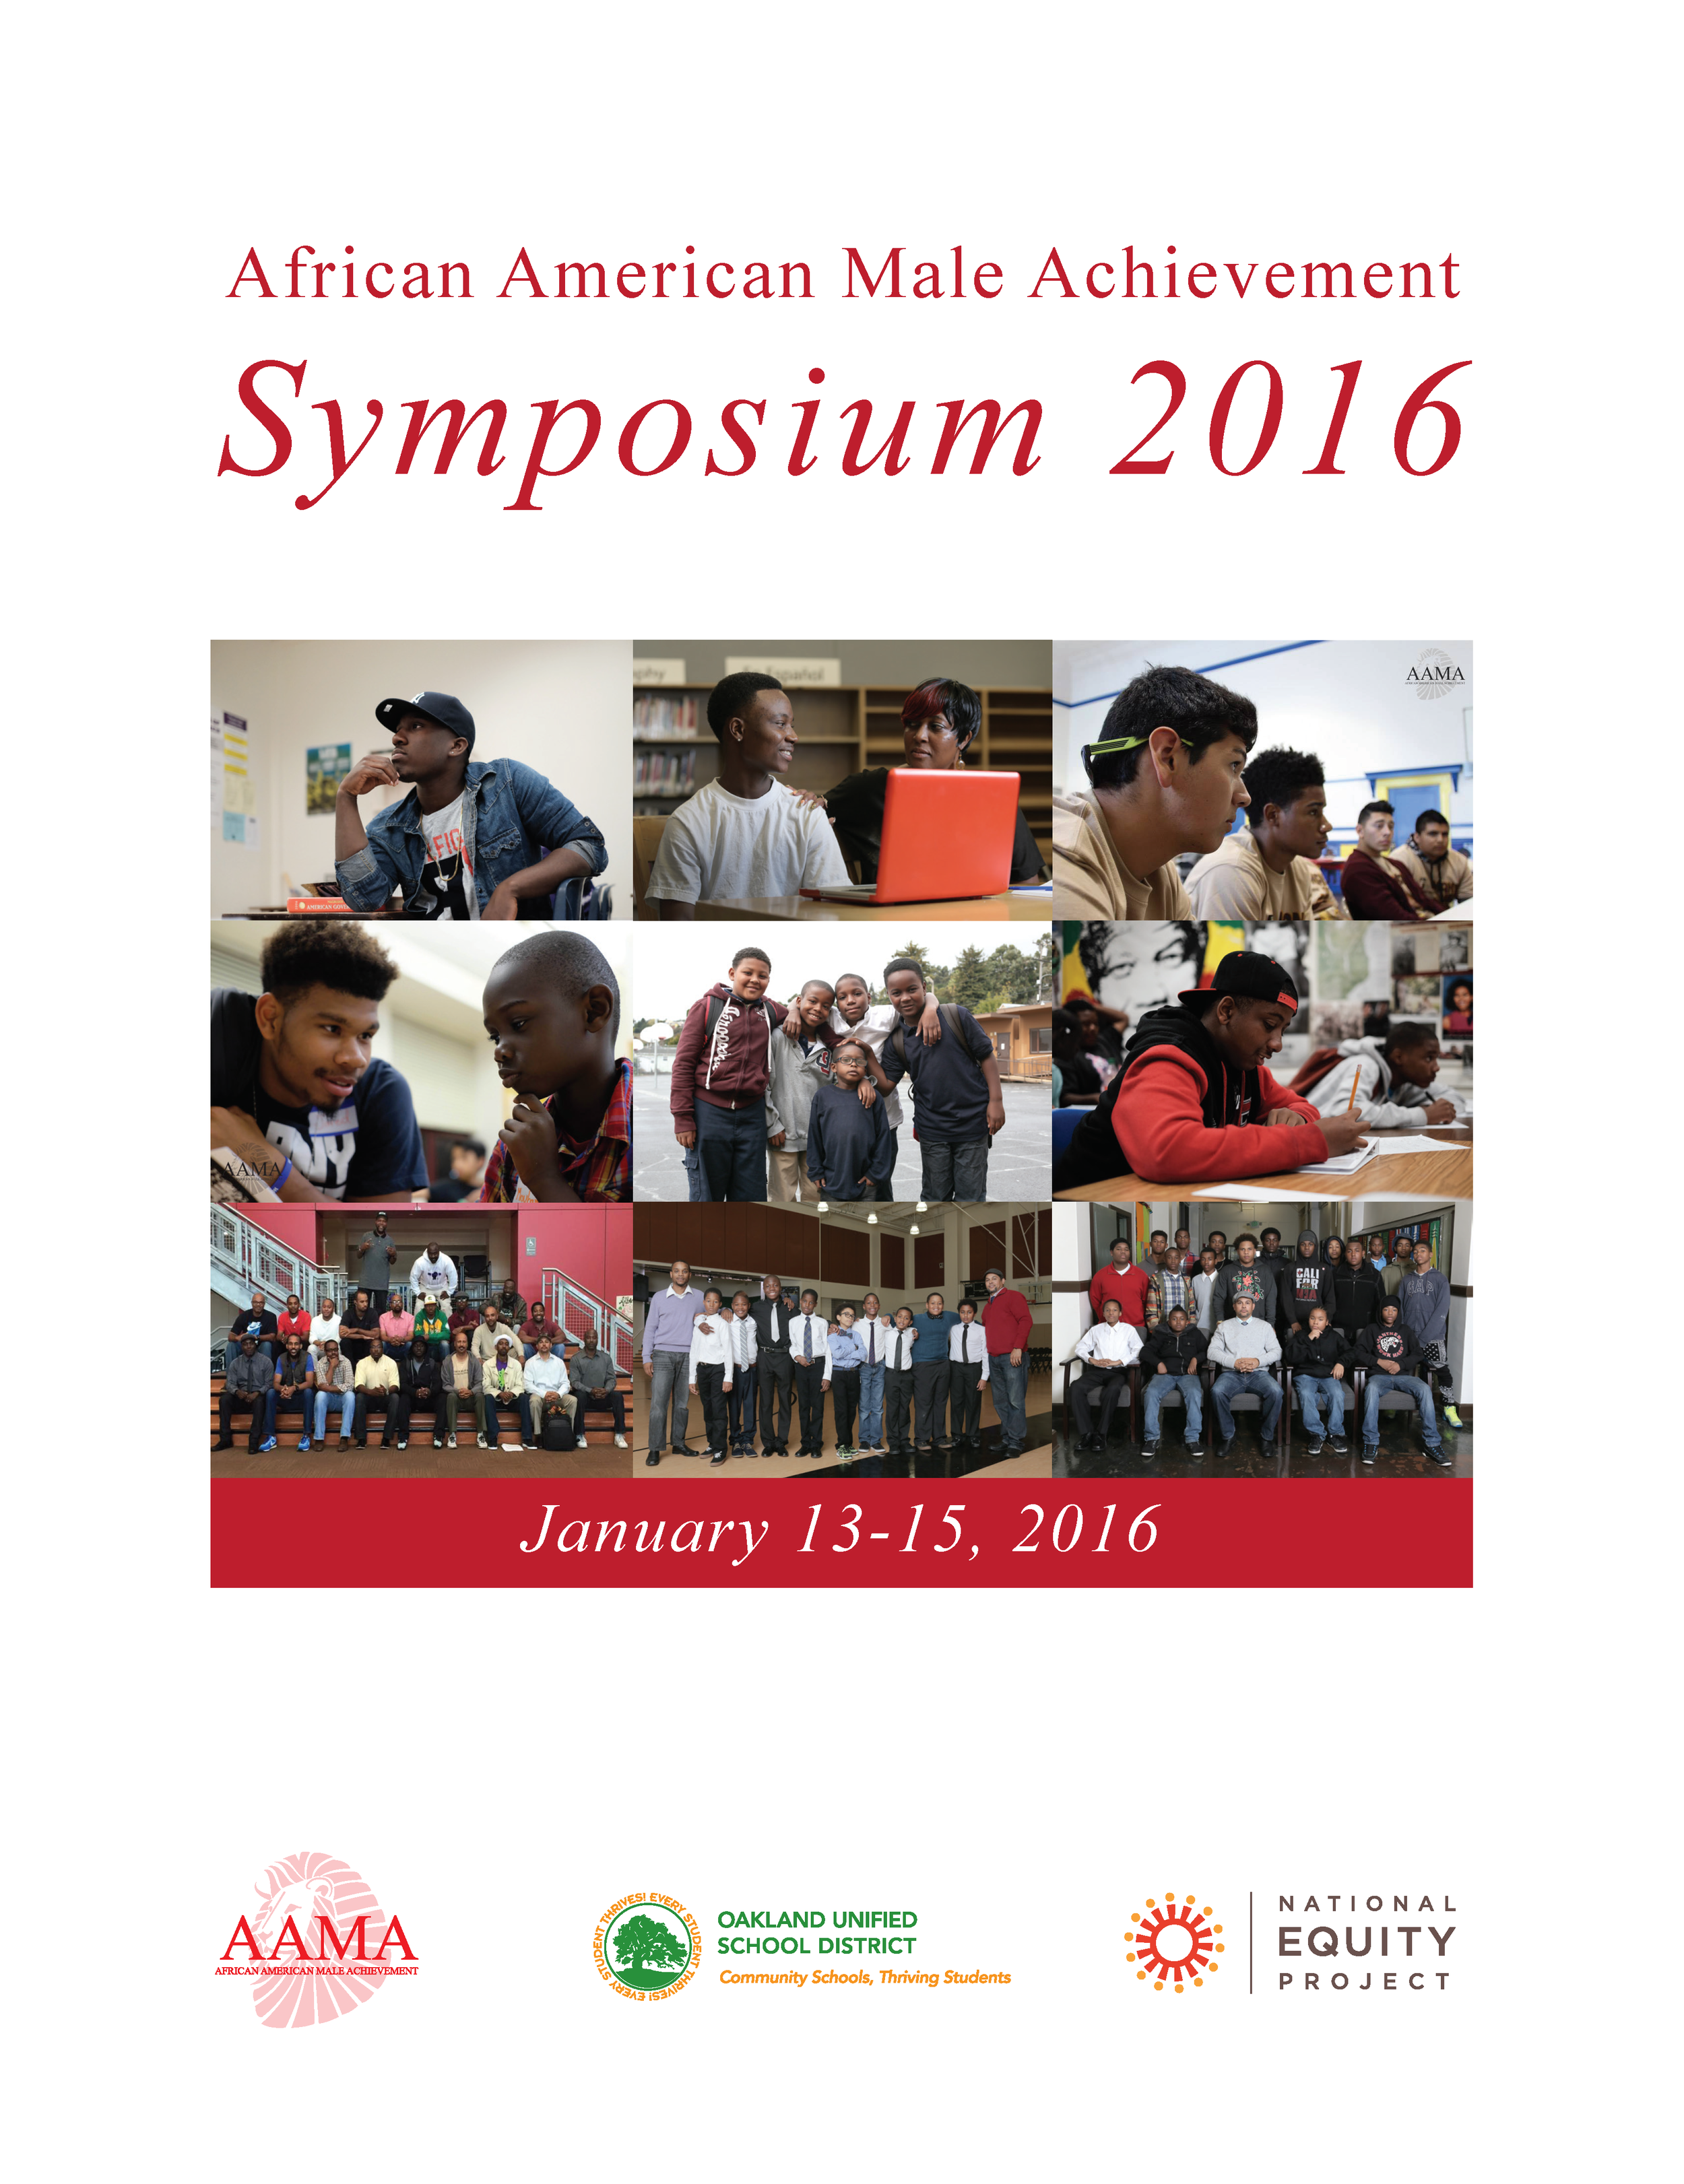 AAMA Symposium 2016 Program FINAL-cover.png